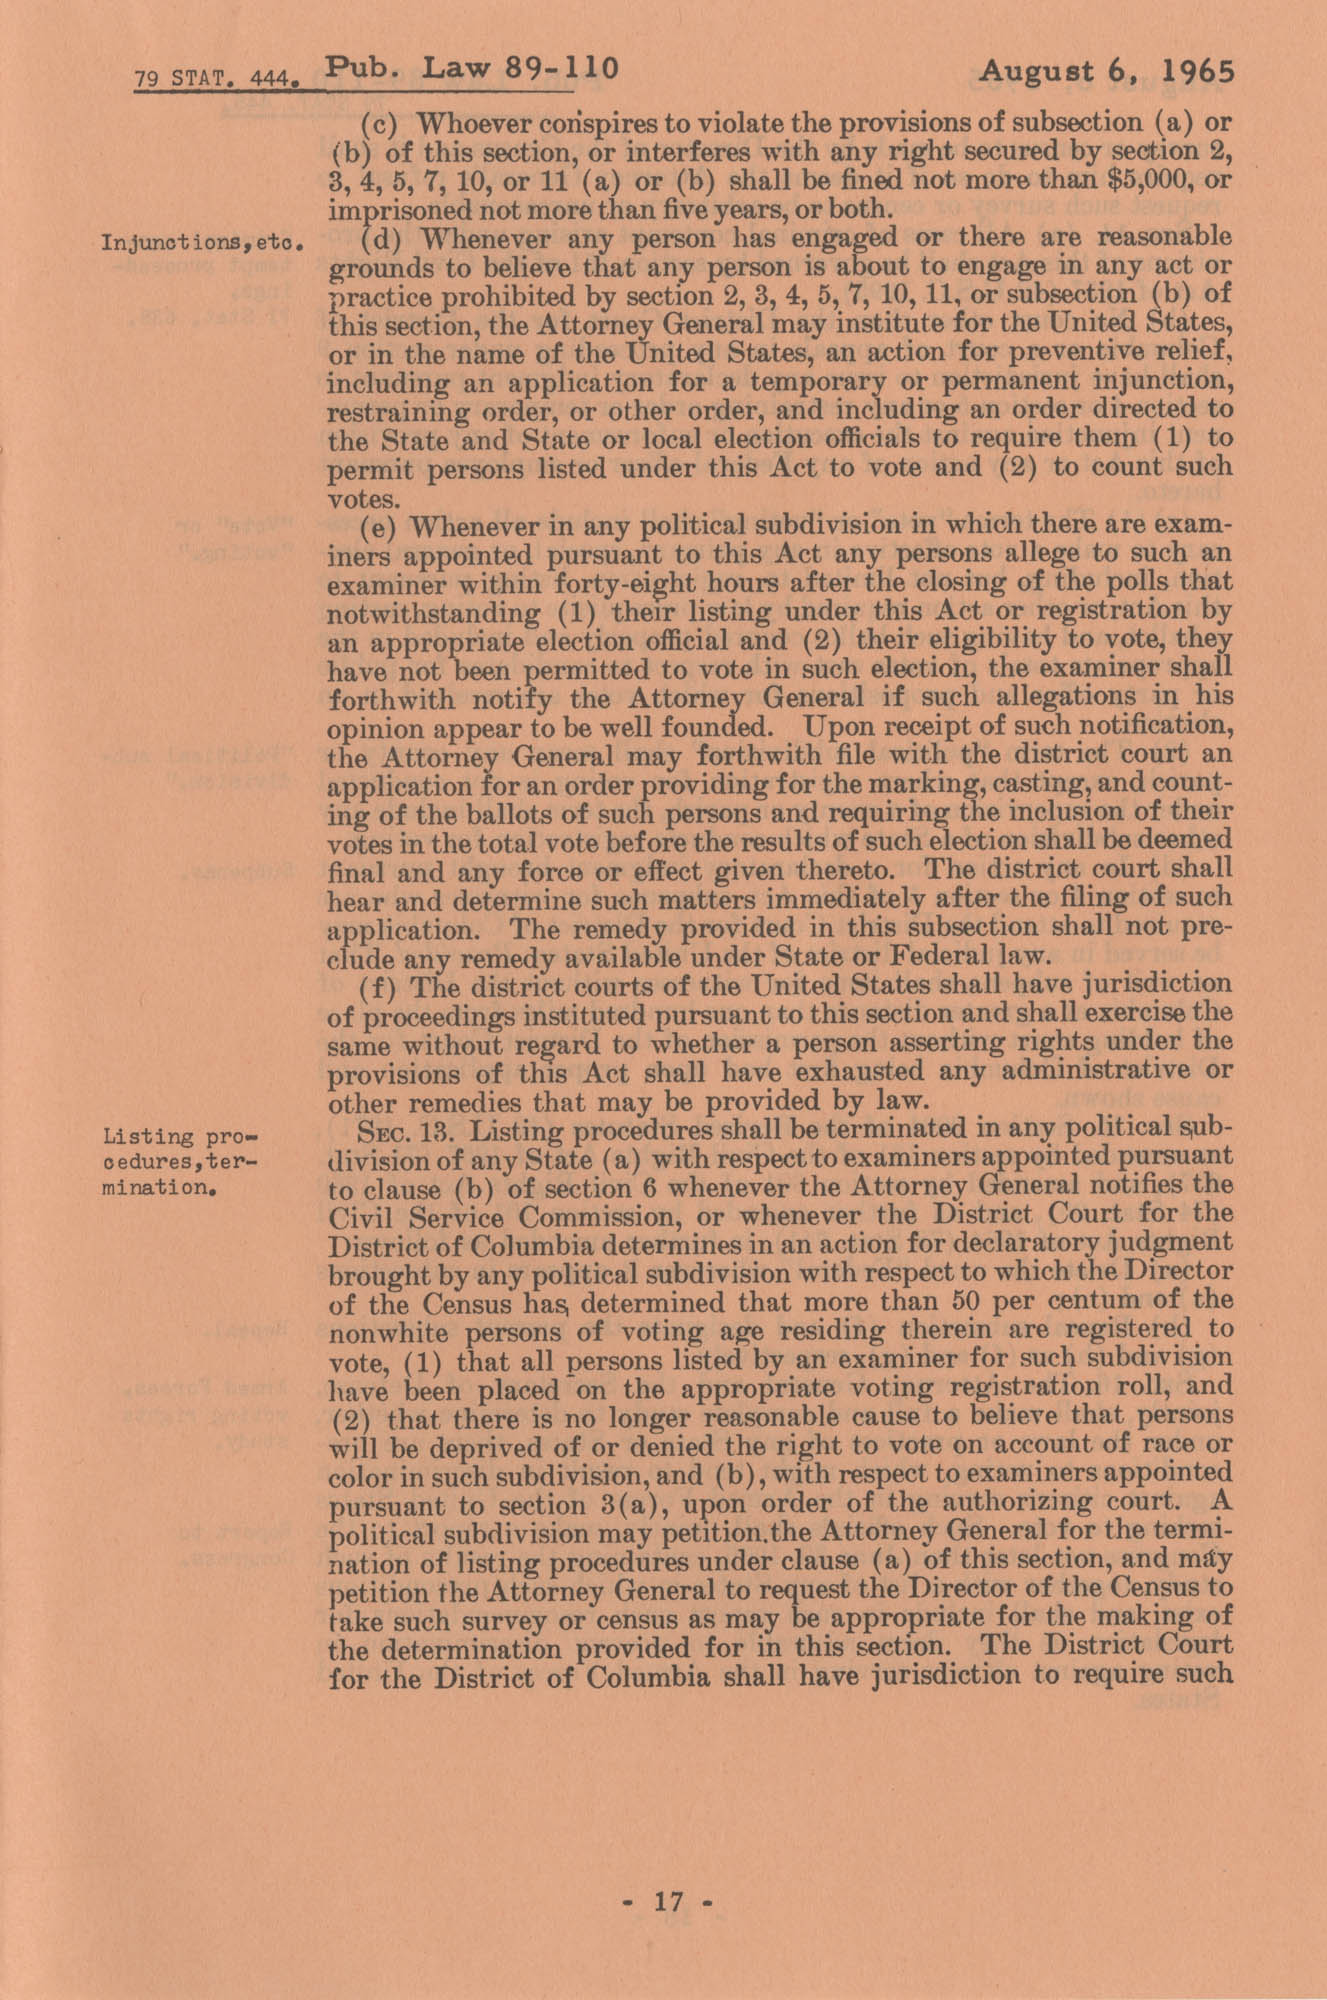 The Voting Rights Act of 1965, Page 17